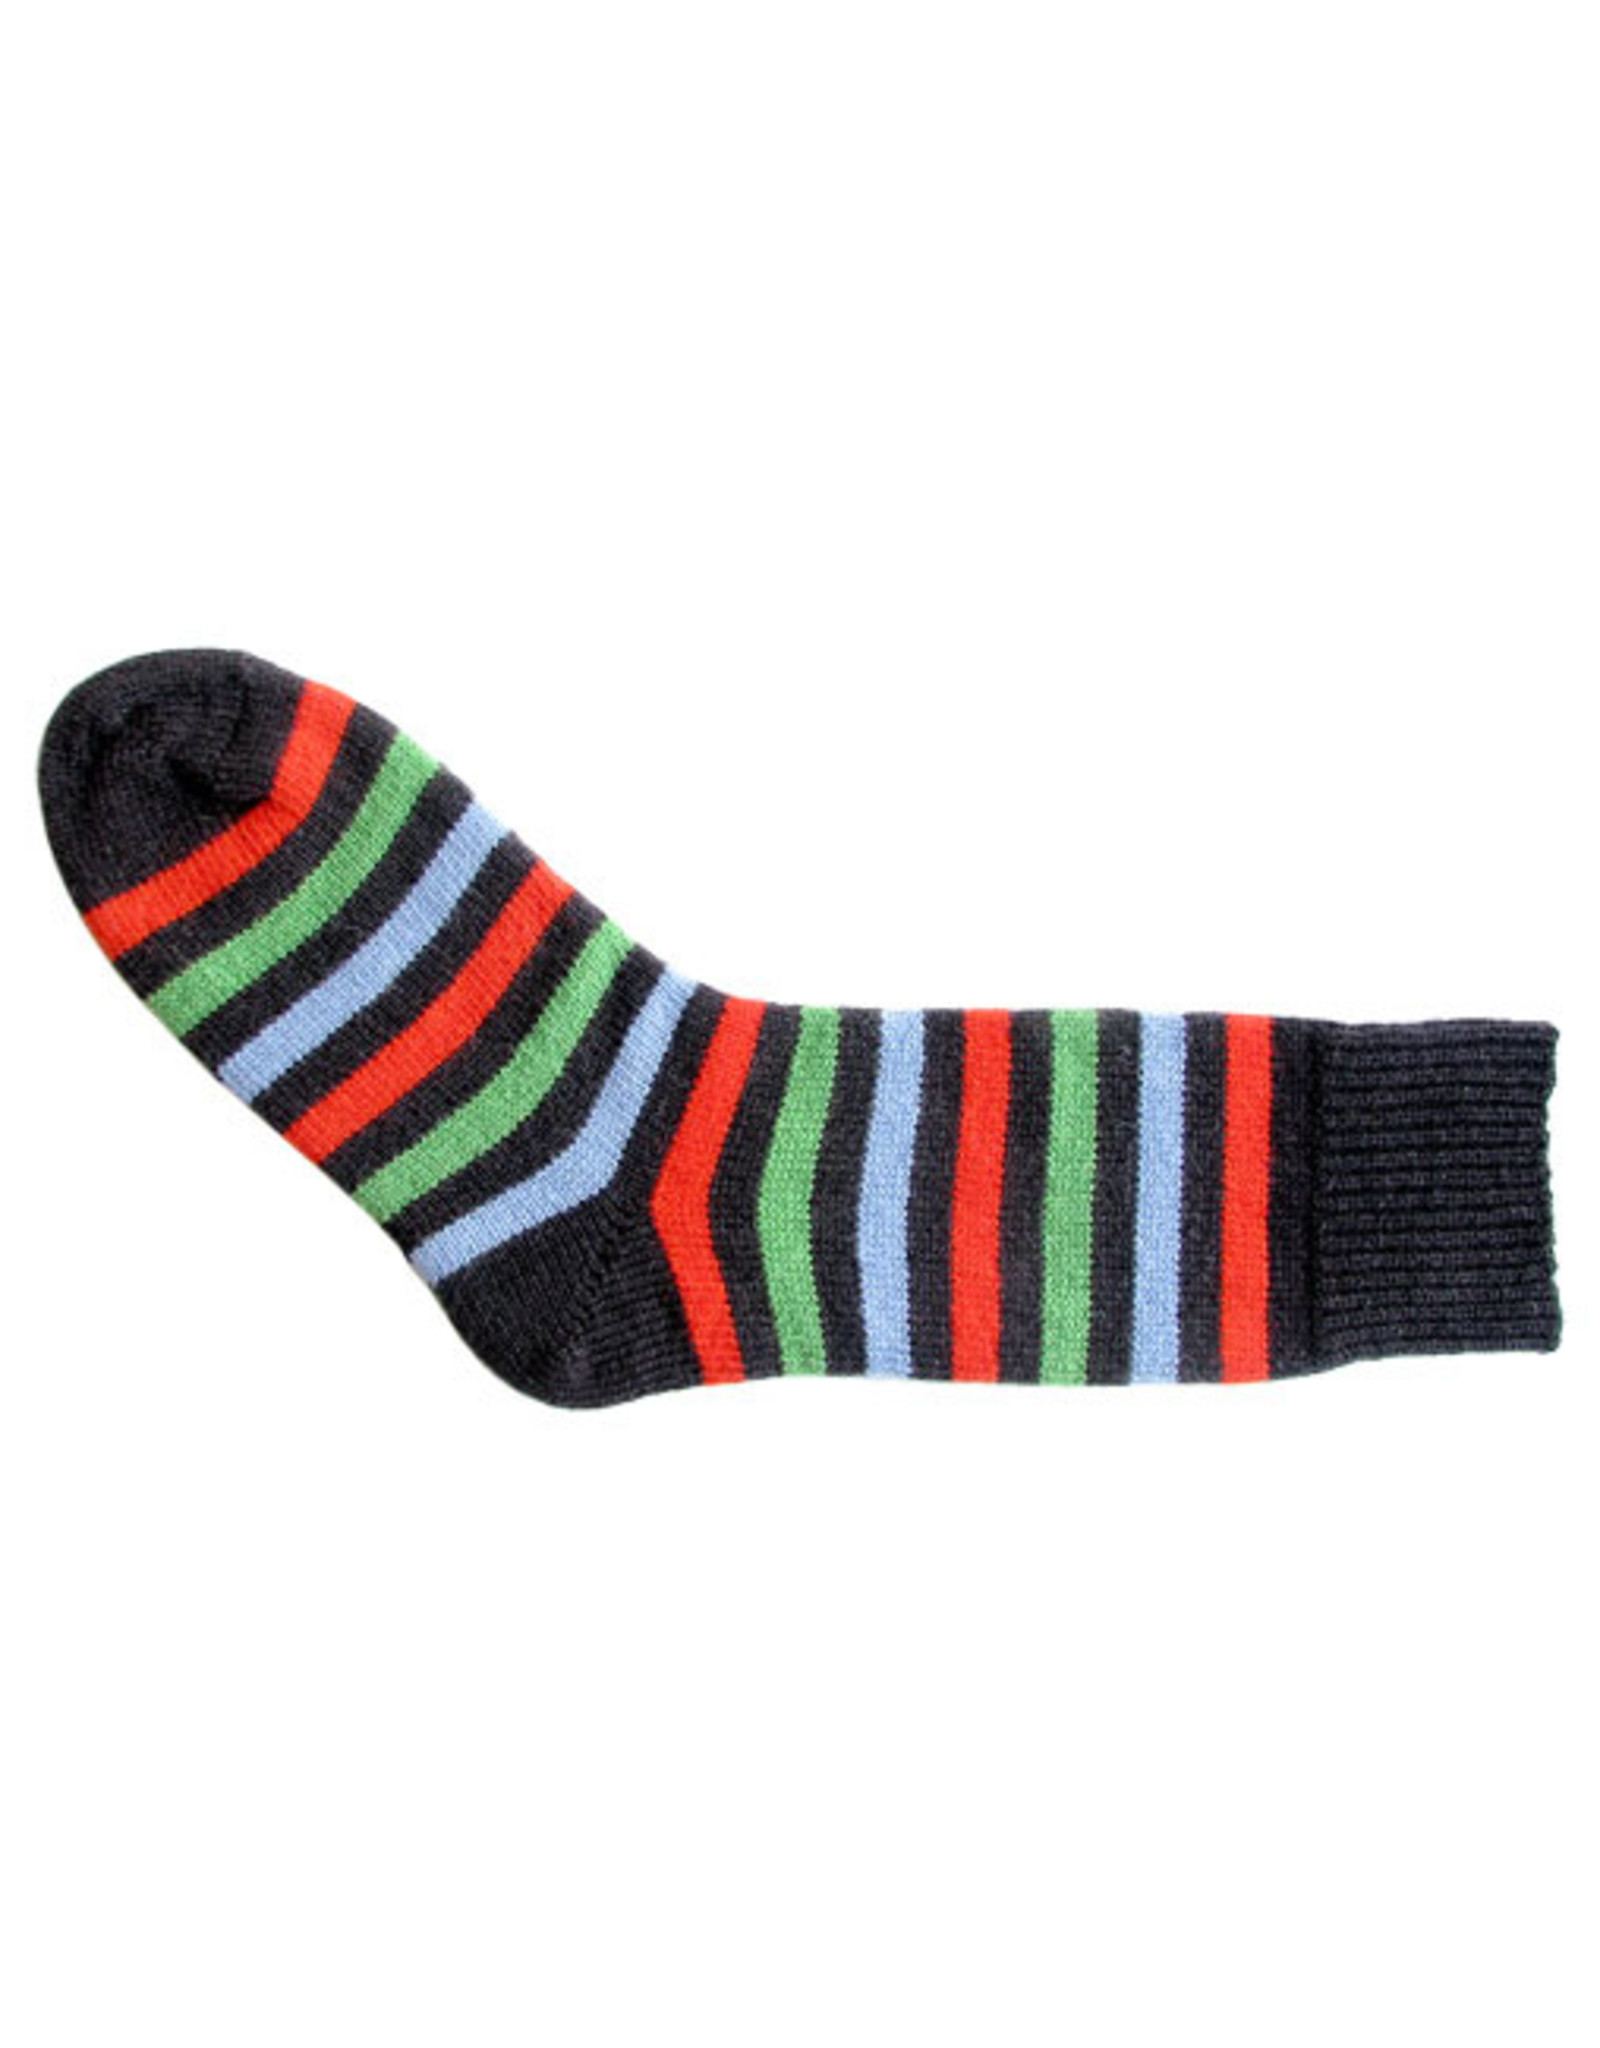 Bas de laine & mot coquin - Socks The Champion (Blue/Orange, Blue and Green)